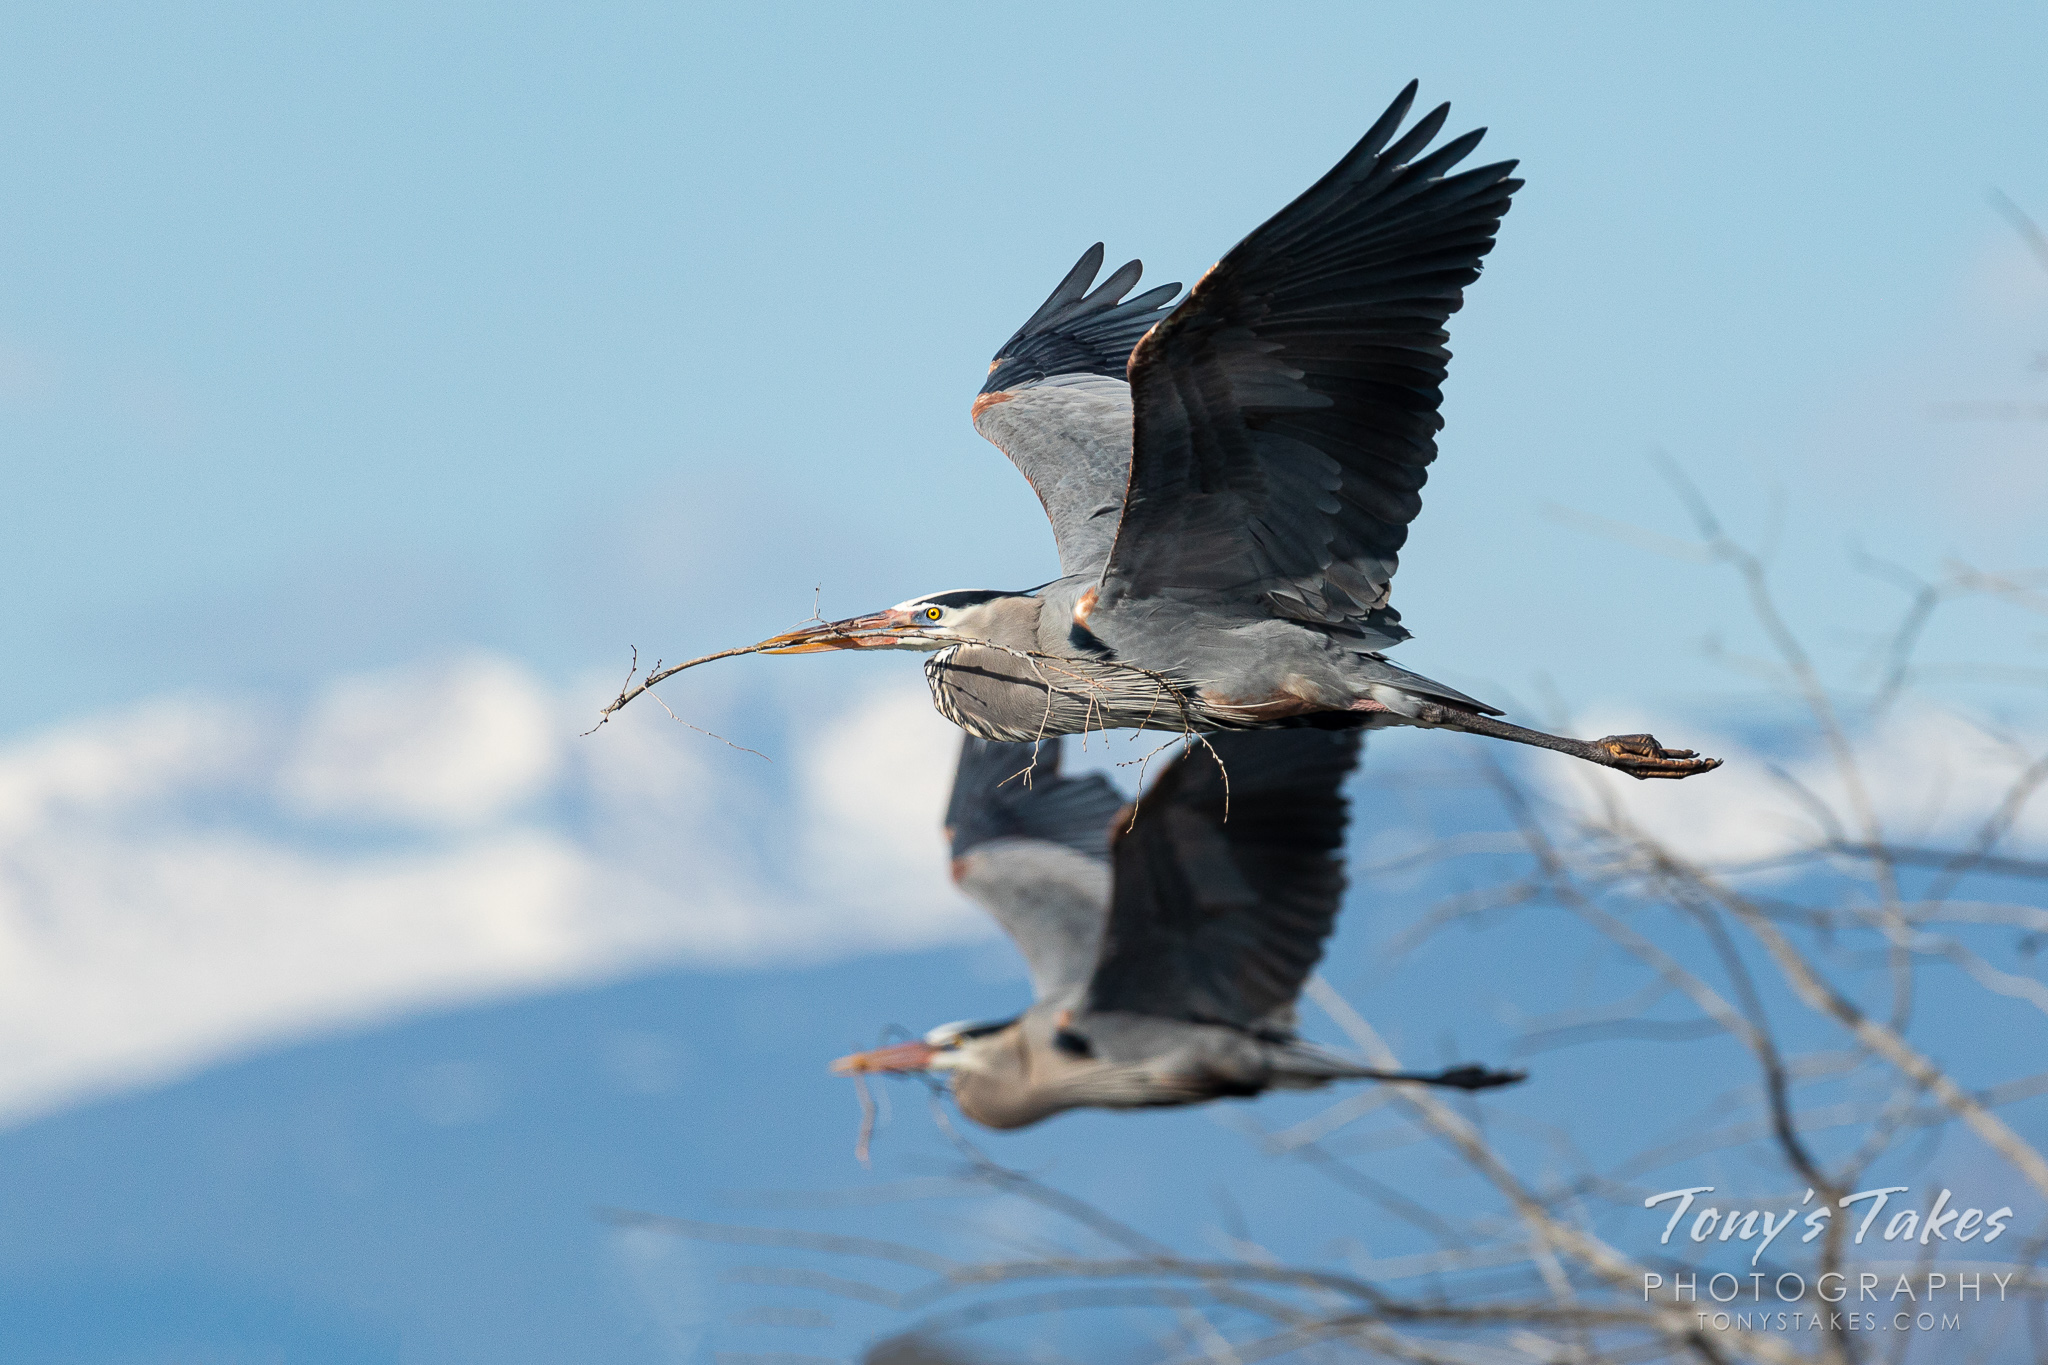 Great blue herons race back to their nests with sticks. (© Tony's Takes)